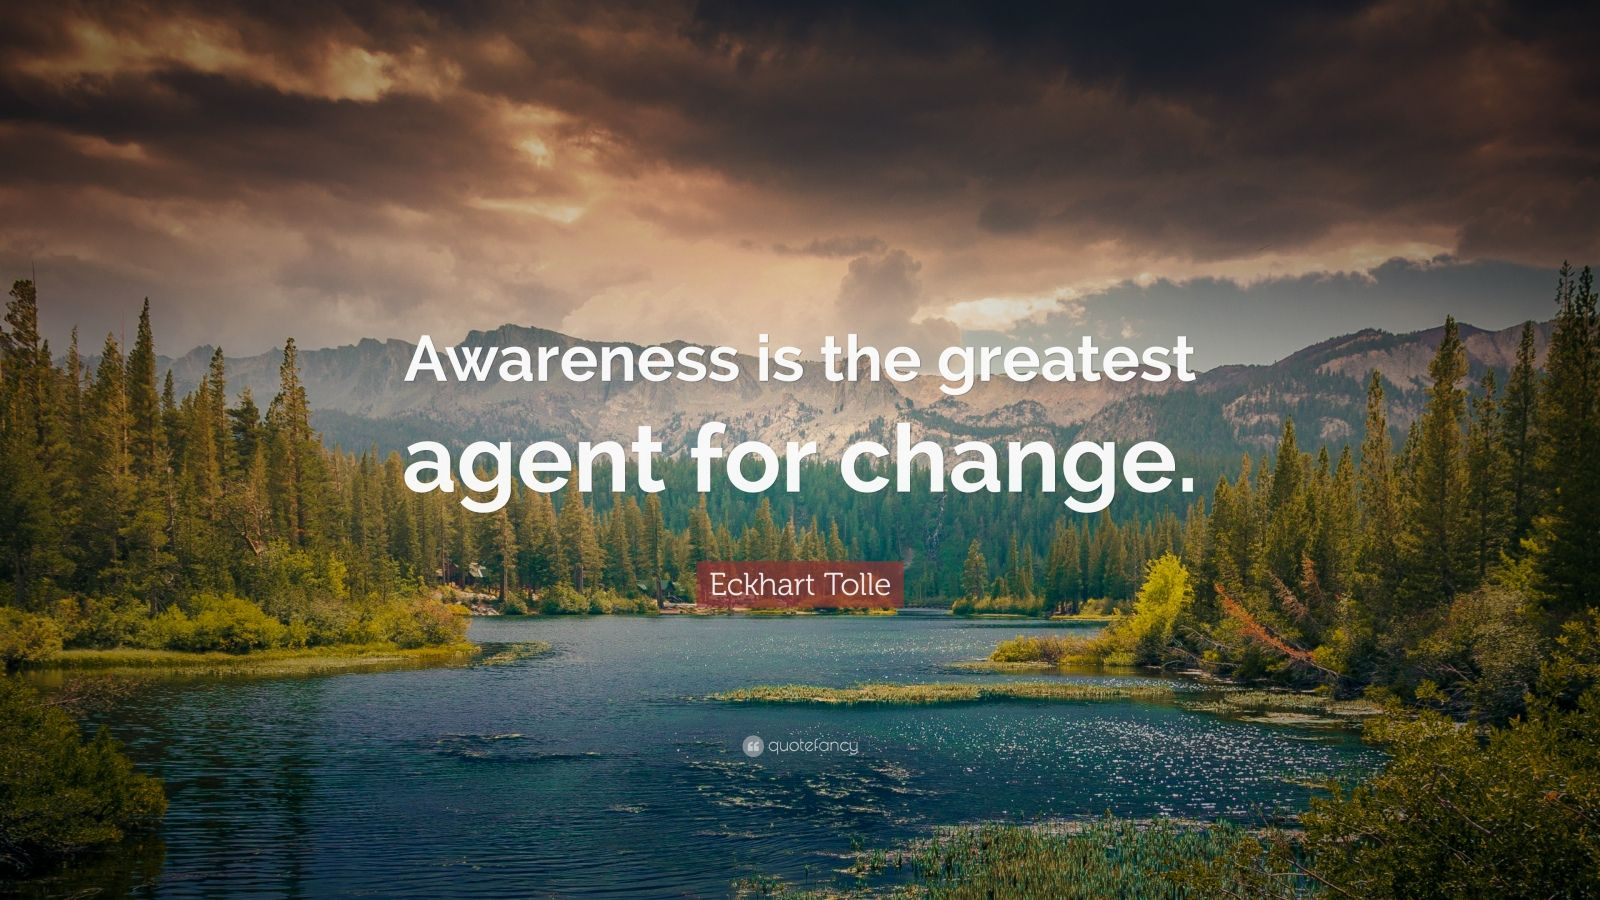 Inspiring Quotes With Wallpapers Eckhart Tolle Quote Awareness Is The Greatest Agent For